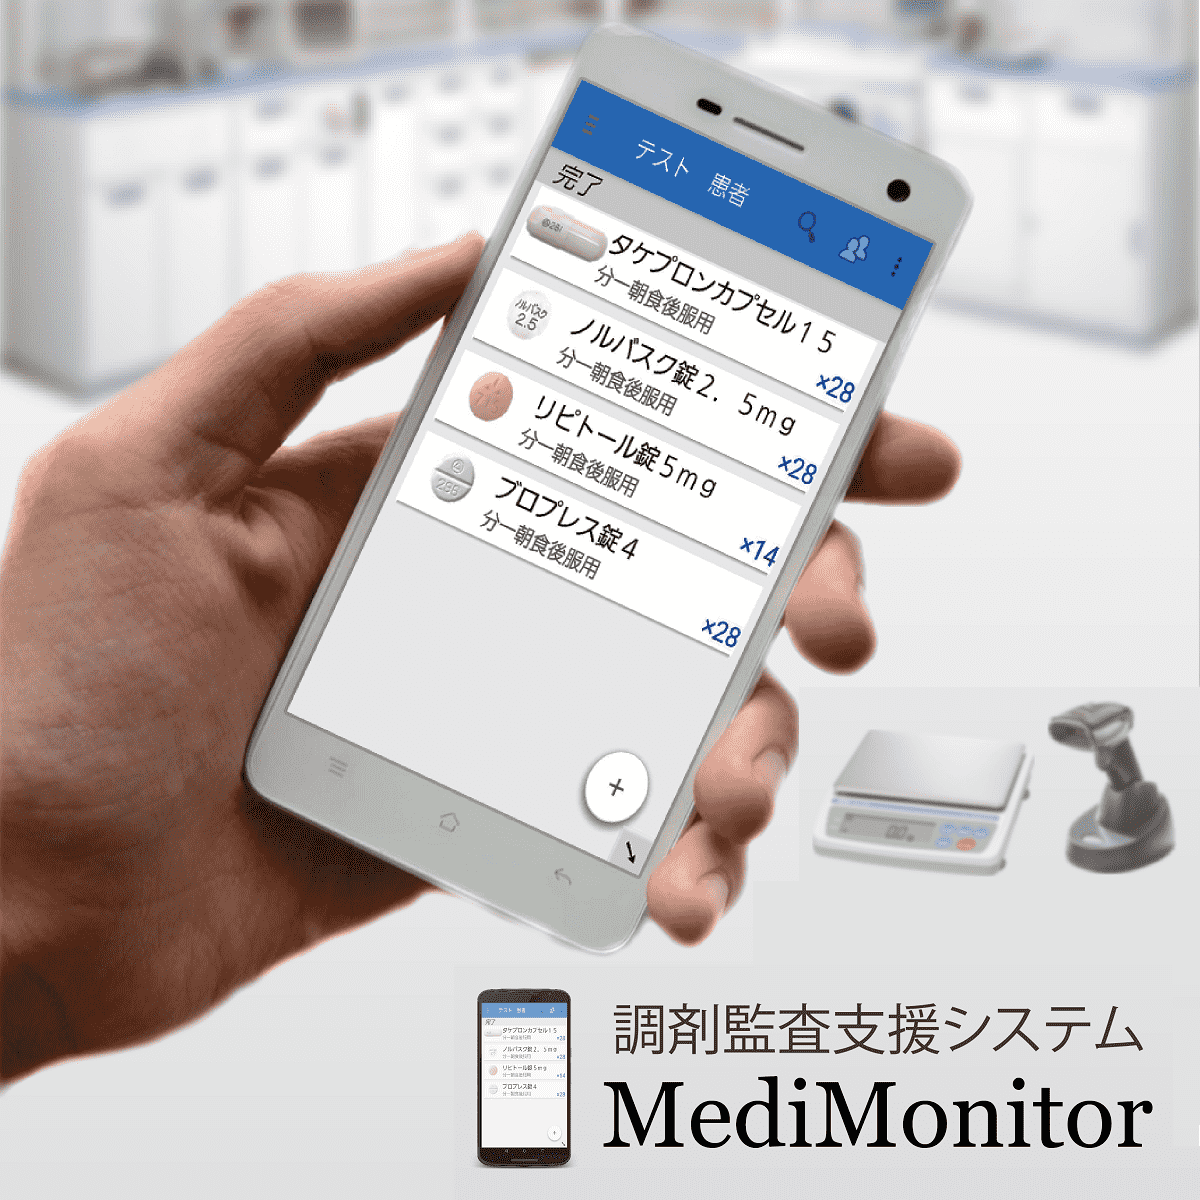 medimonitor_flyer_1200px_optimized